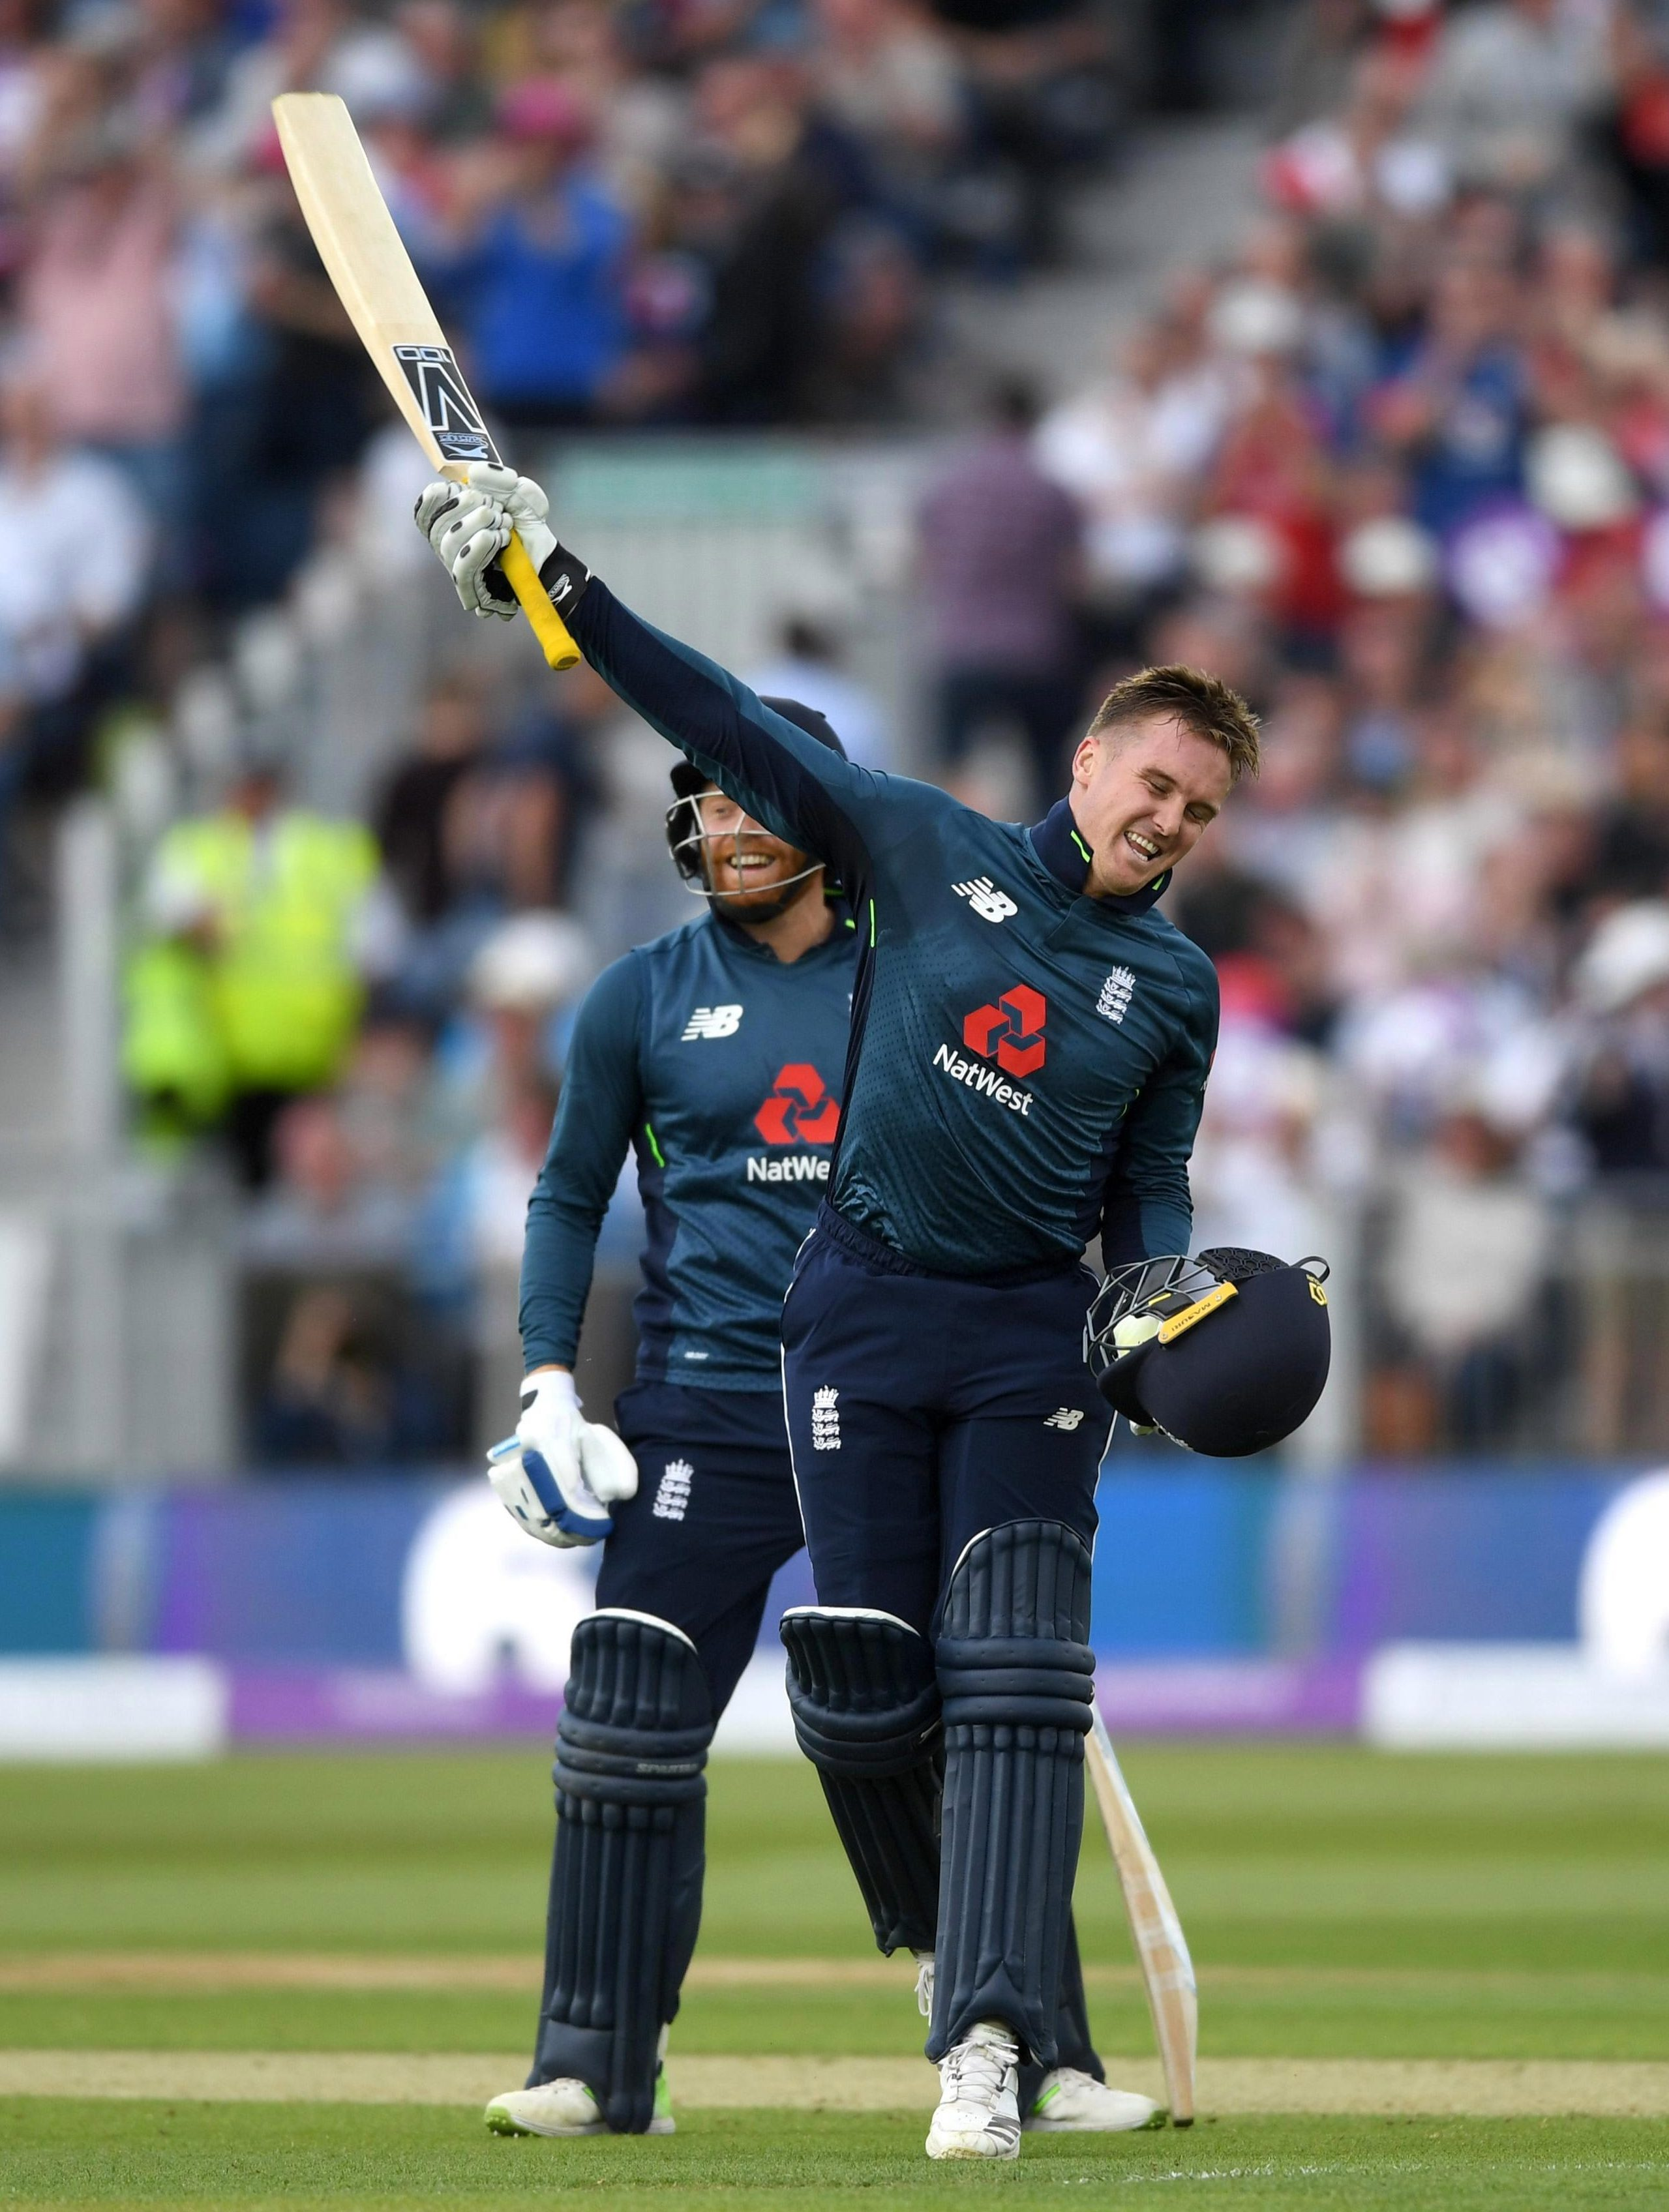 Jason Roy hit another century as England smashed Australia again